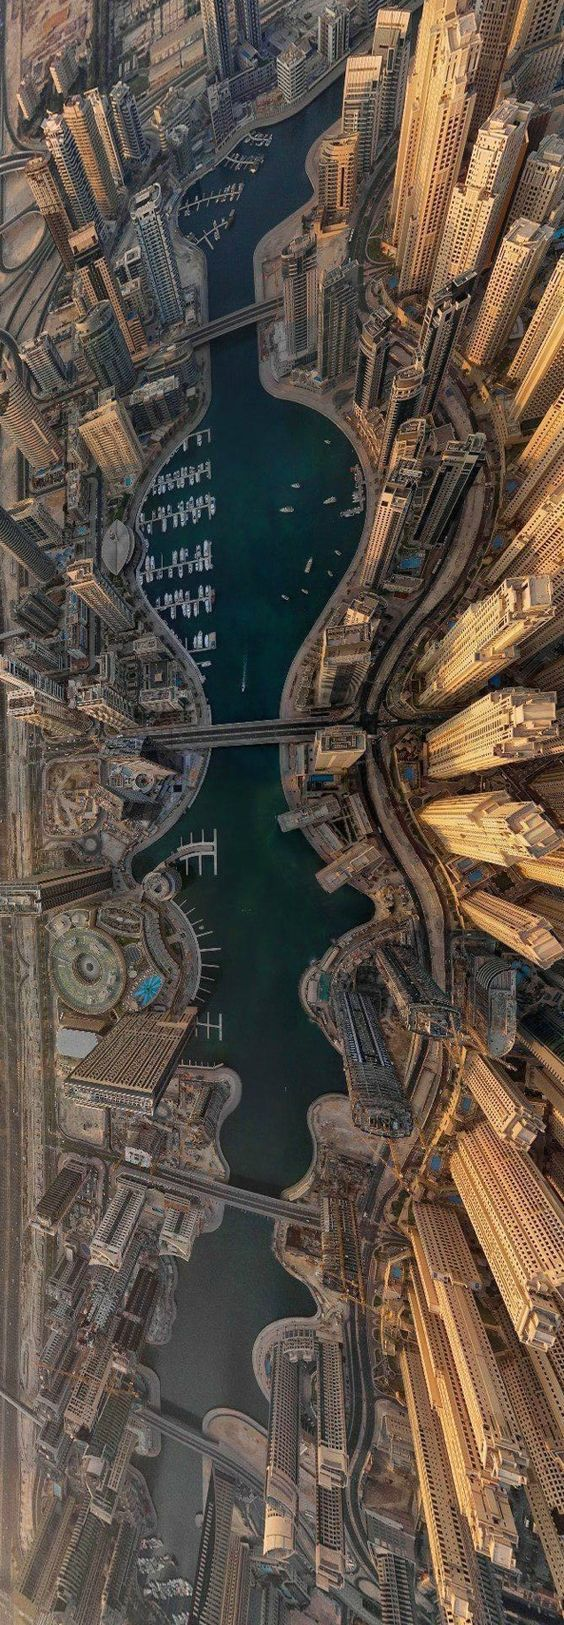 Dubai, from above.  ✈✈✈ Don't miss your chance to win a Free International Roundtrip Ticket to anywhere in the world **GIVEAWAY** ✈✈✈ https://thedecisionmoment.com/free-roundtrip-tickets-giveaway/